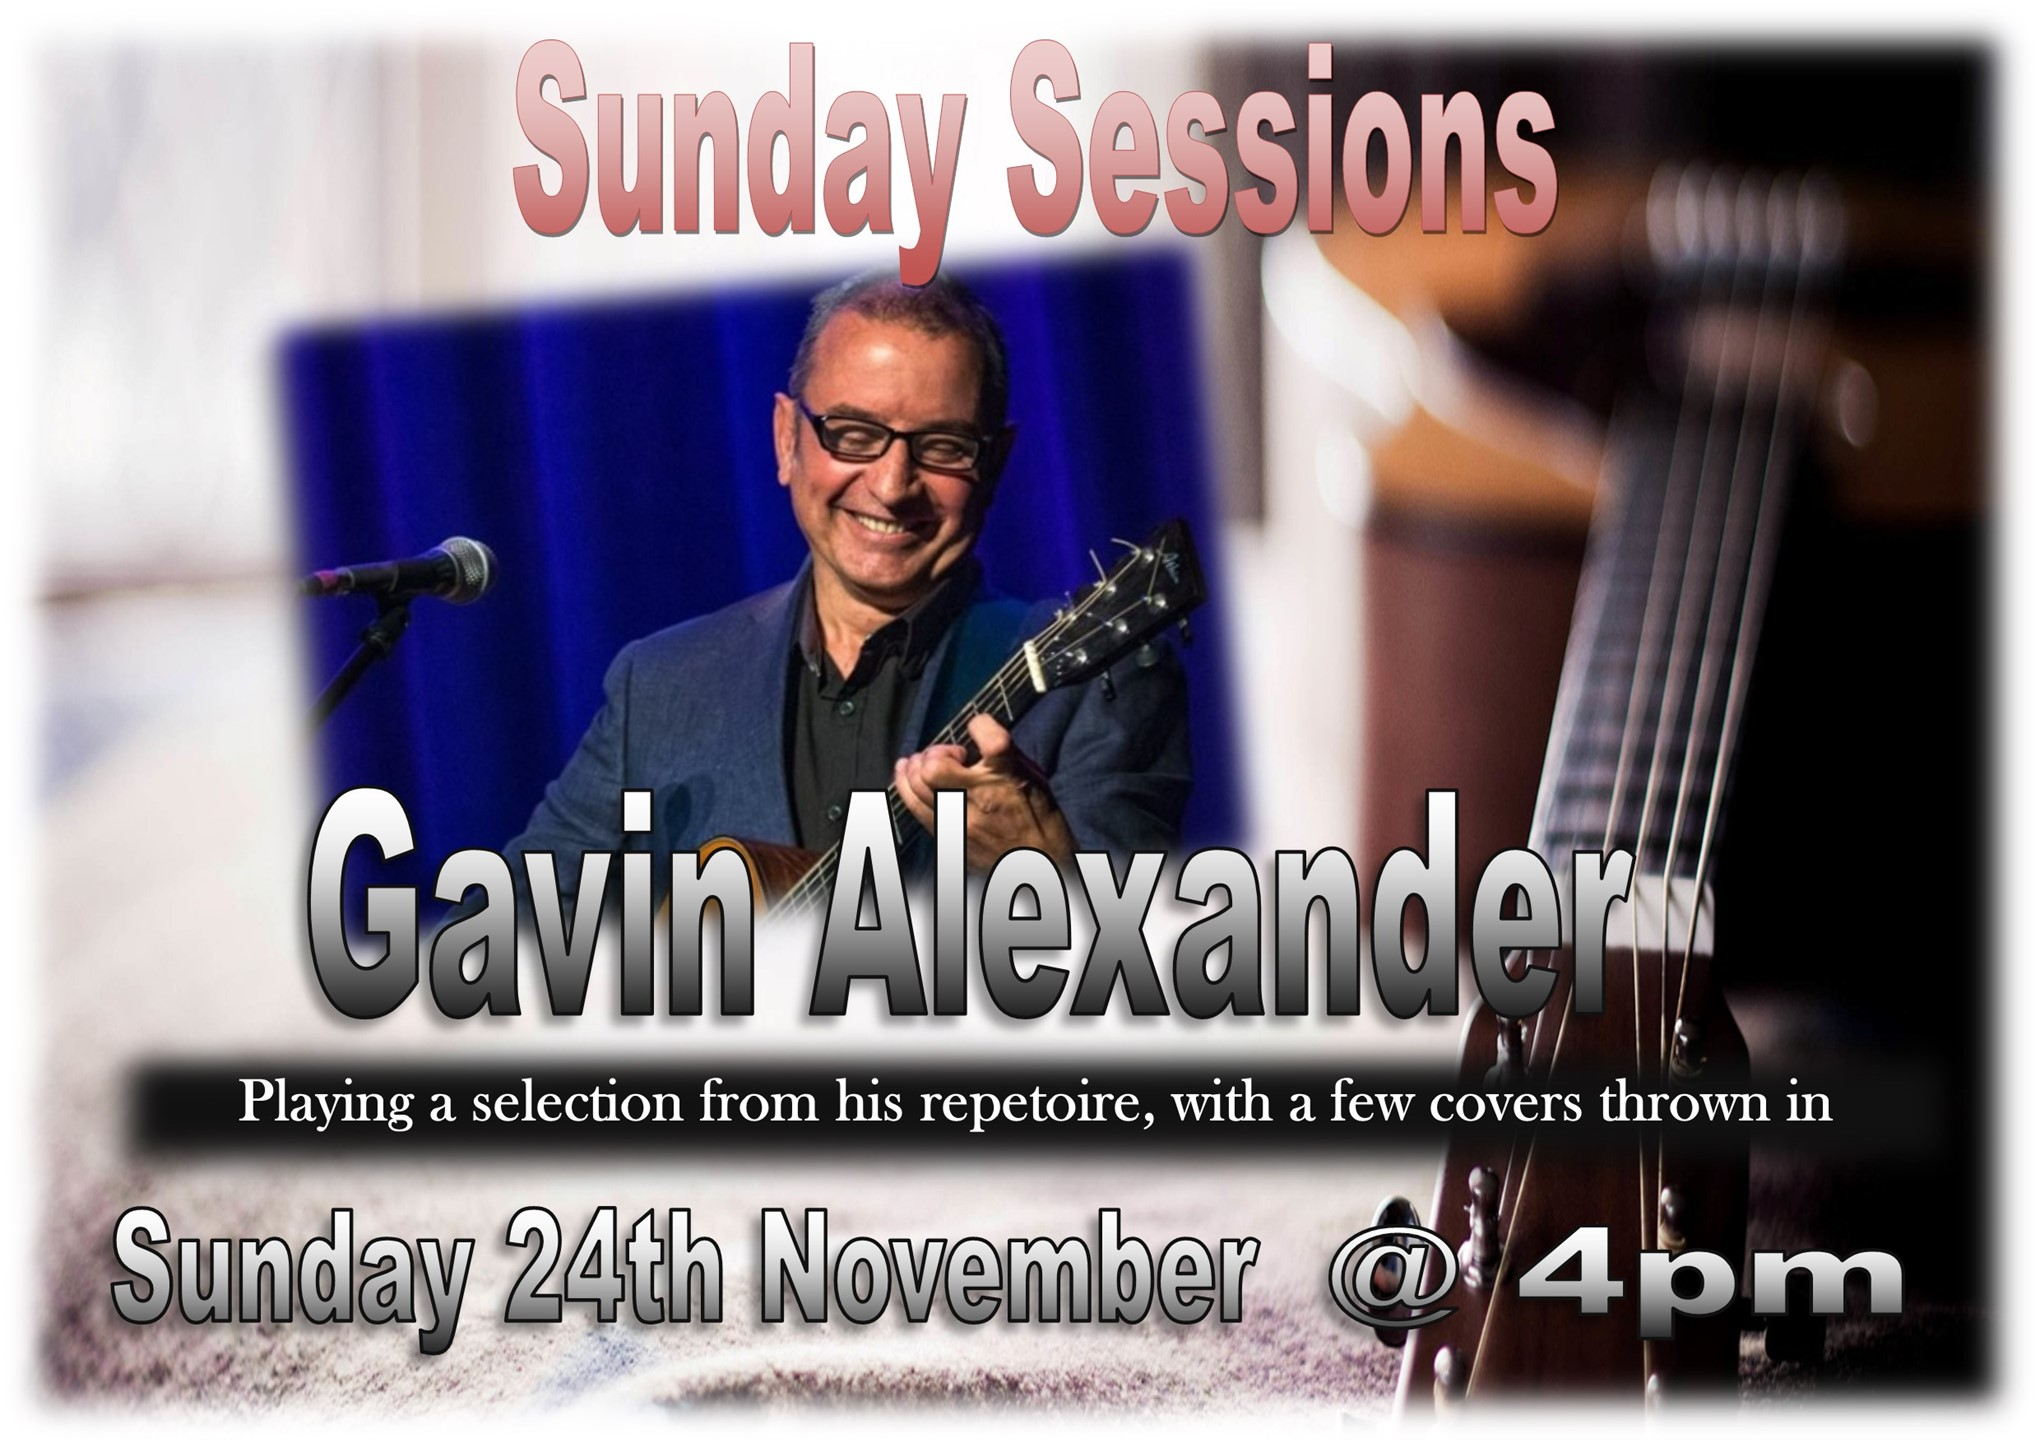 Sunday Sessions with Gavin Alexander